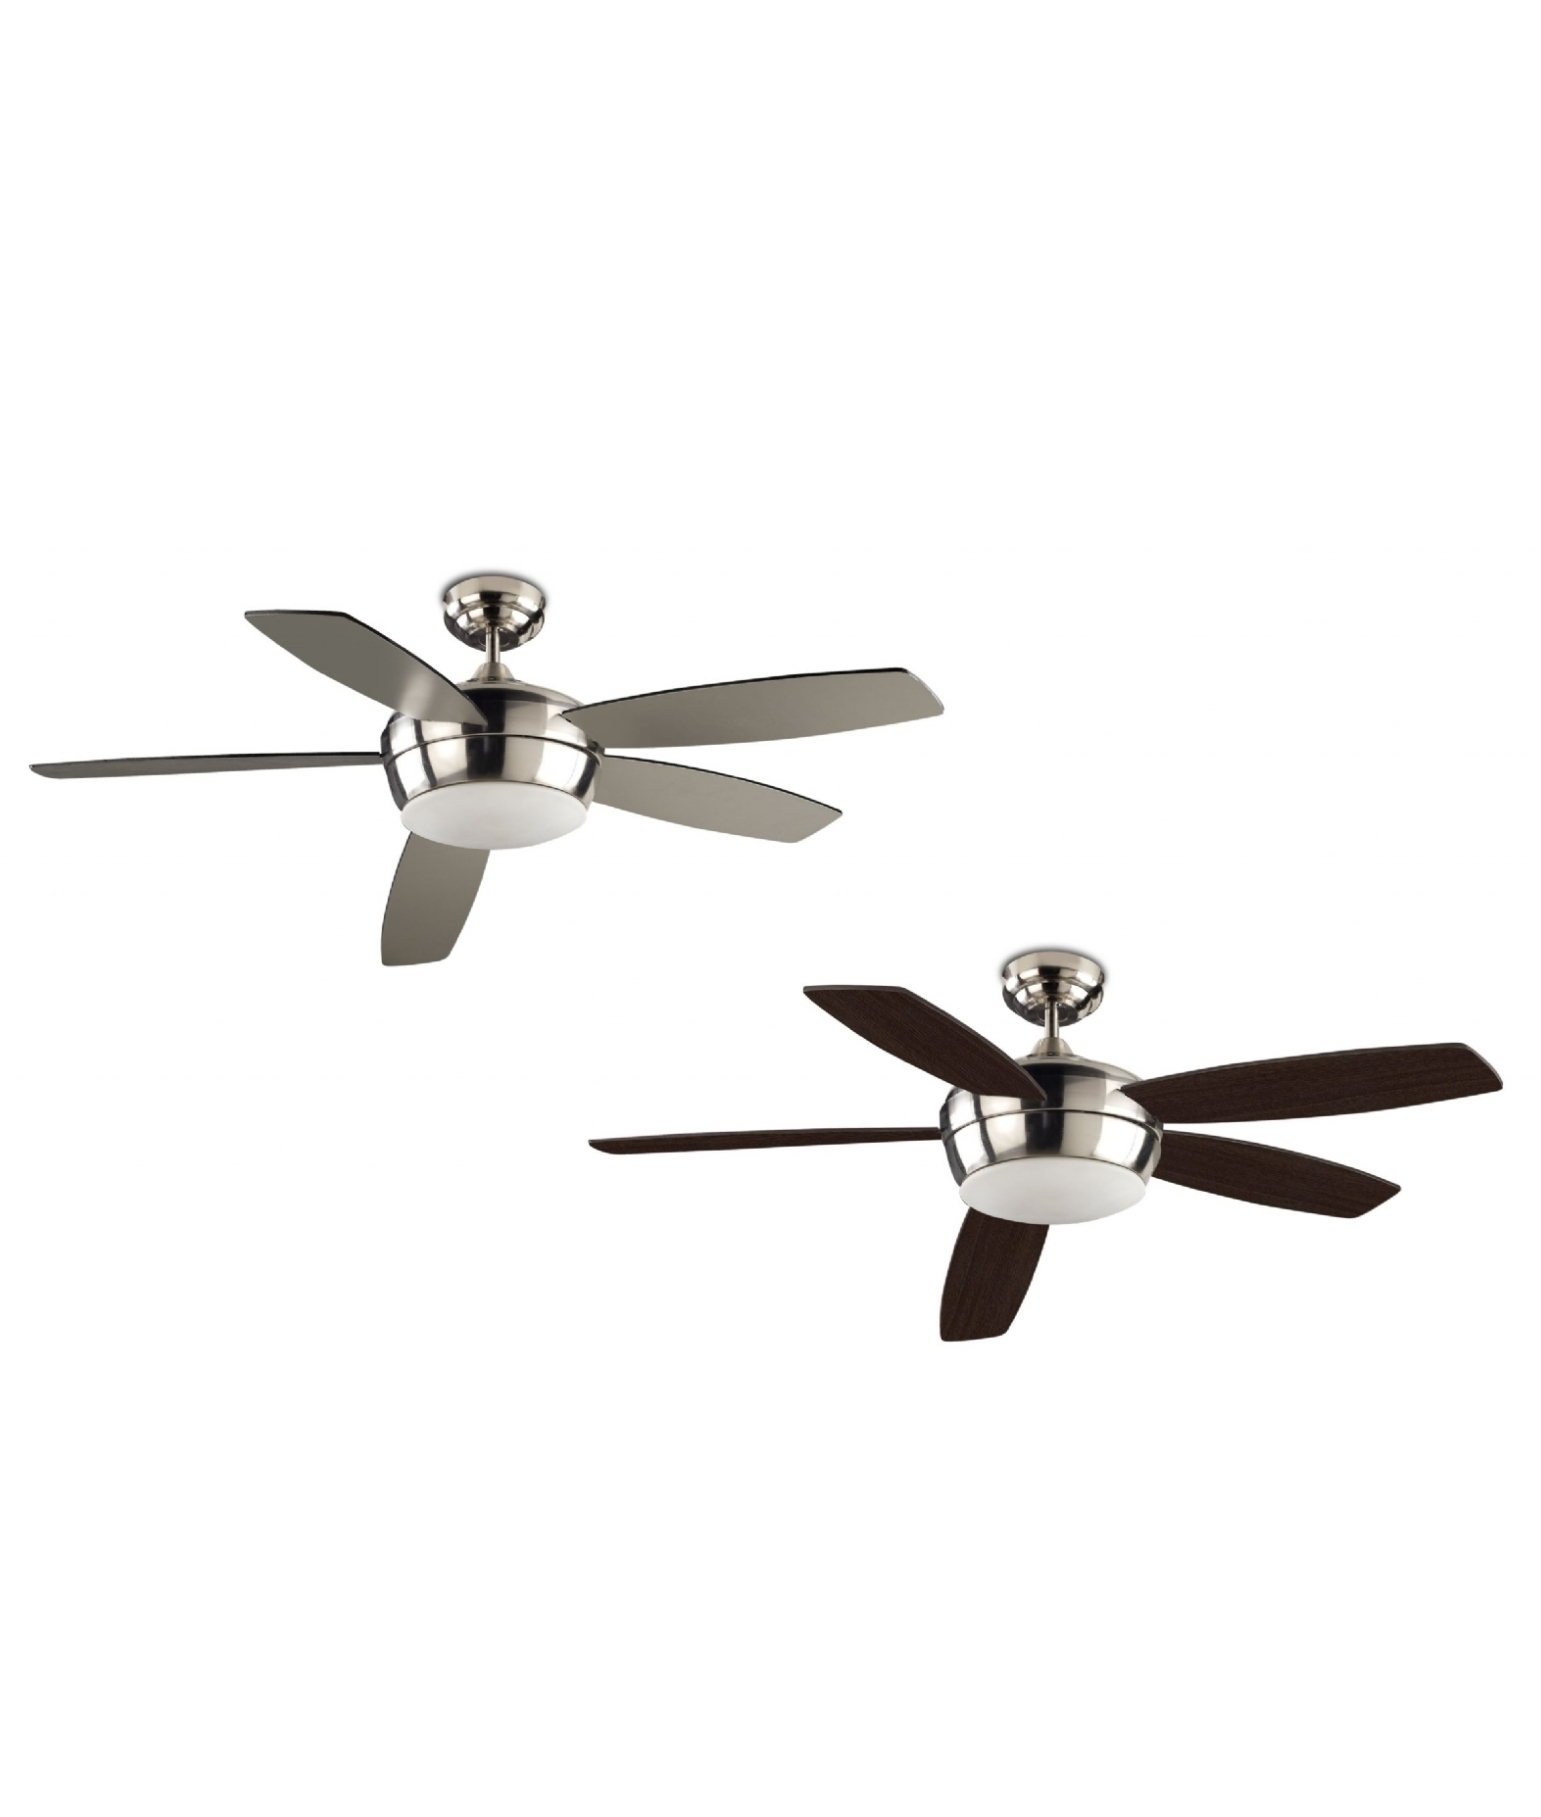 Modern And Quiet Ceiling Fan